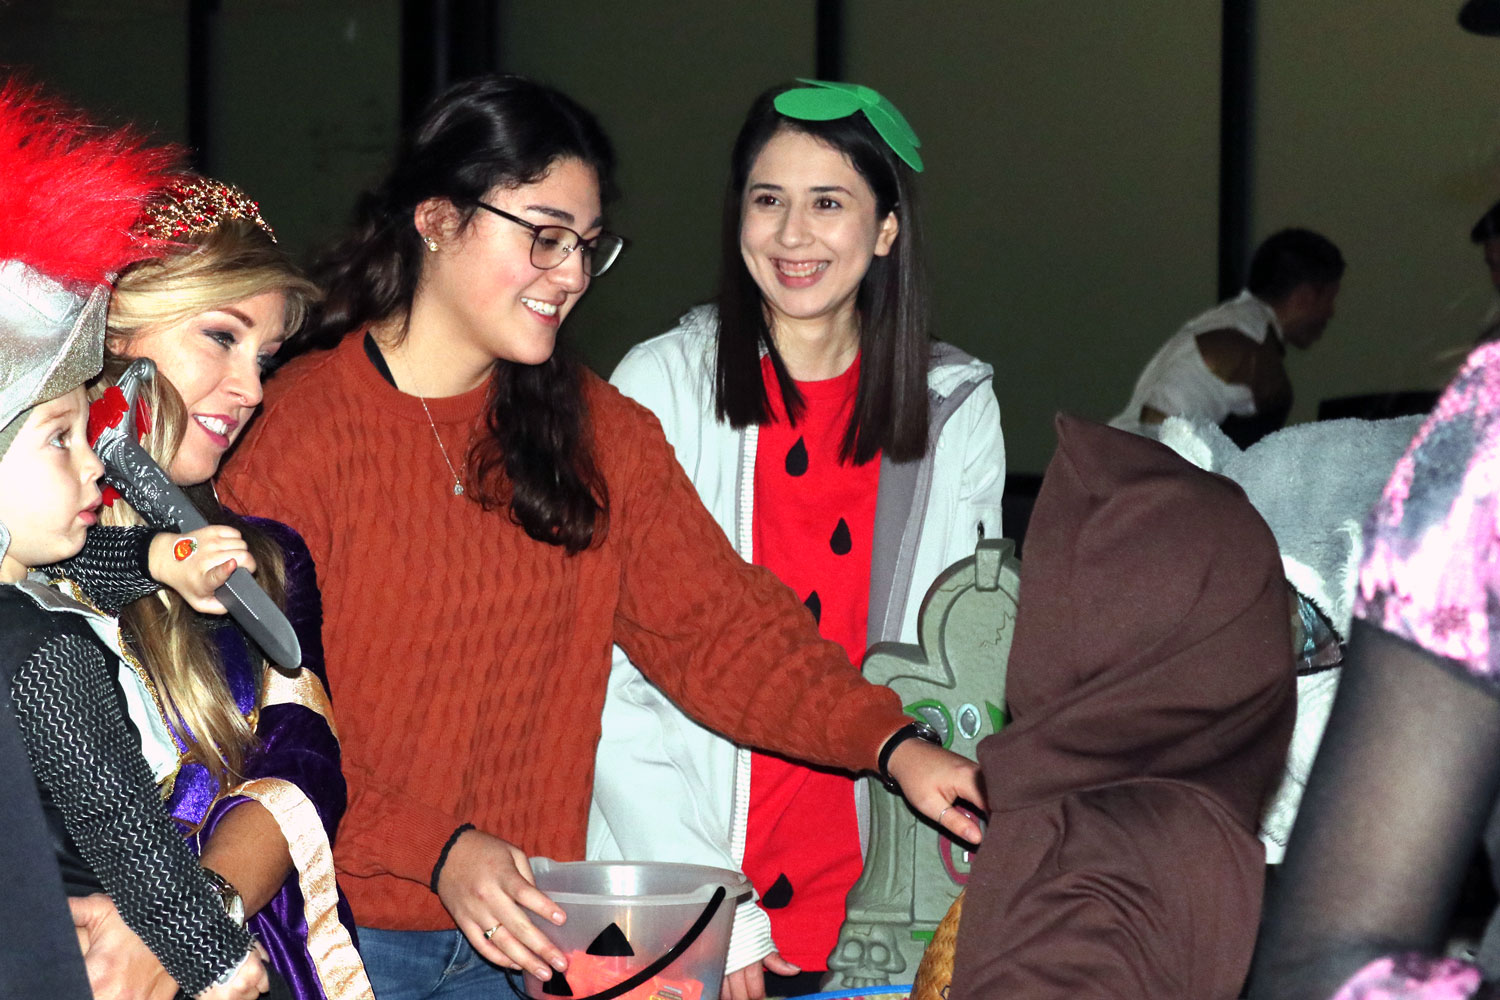 Clubs+like+the+Hispanic+American++Leadership+Organization+came+out+and+provided+trick-or-treaters+with+candy+and+games%21+It+is+a+tradition+for+HALO+to+participate+in+the+event.